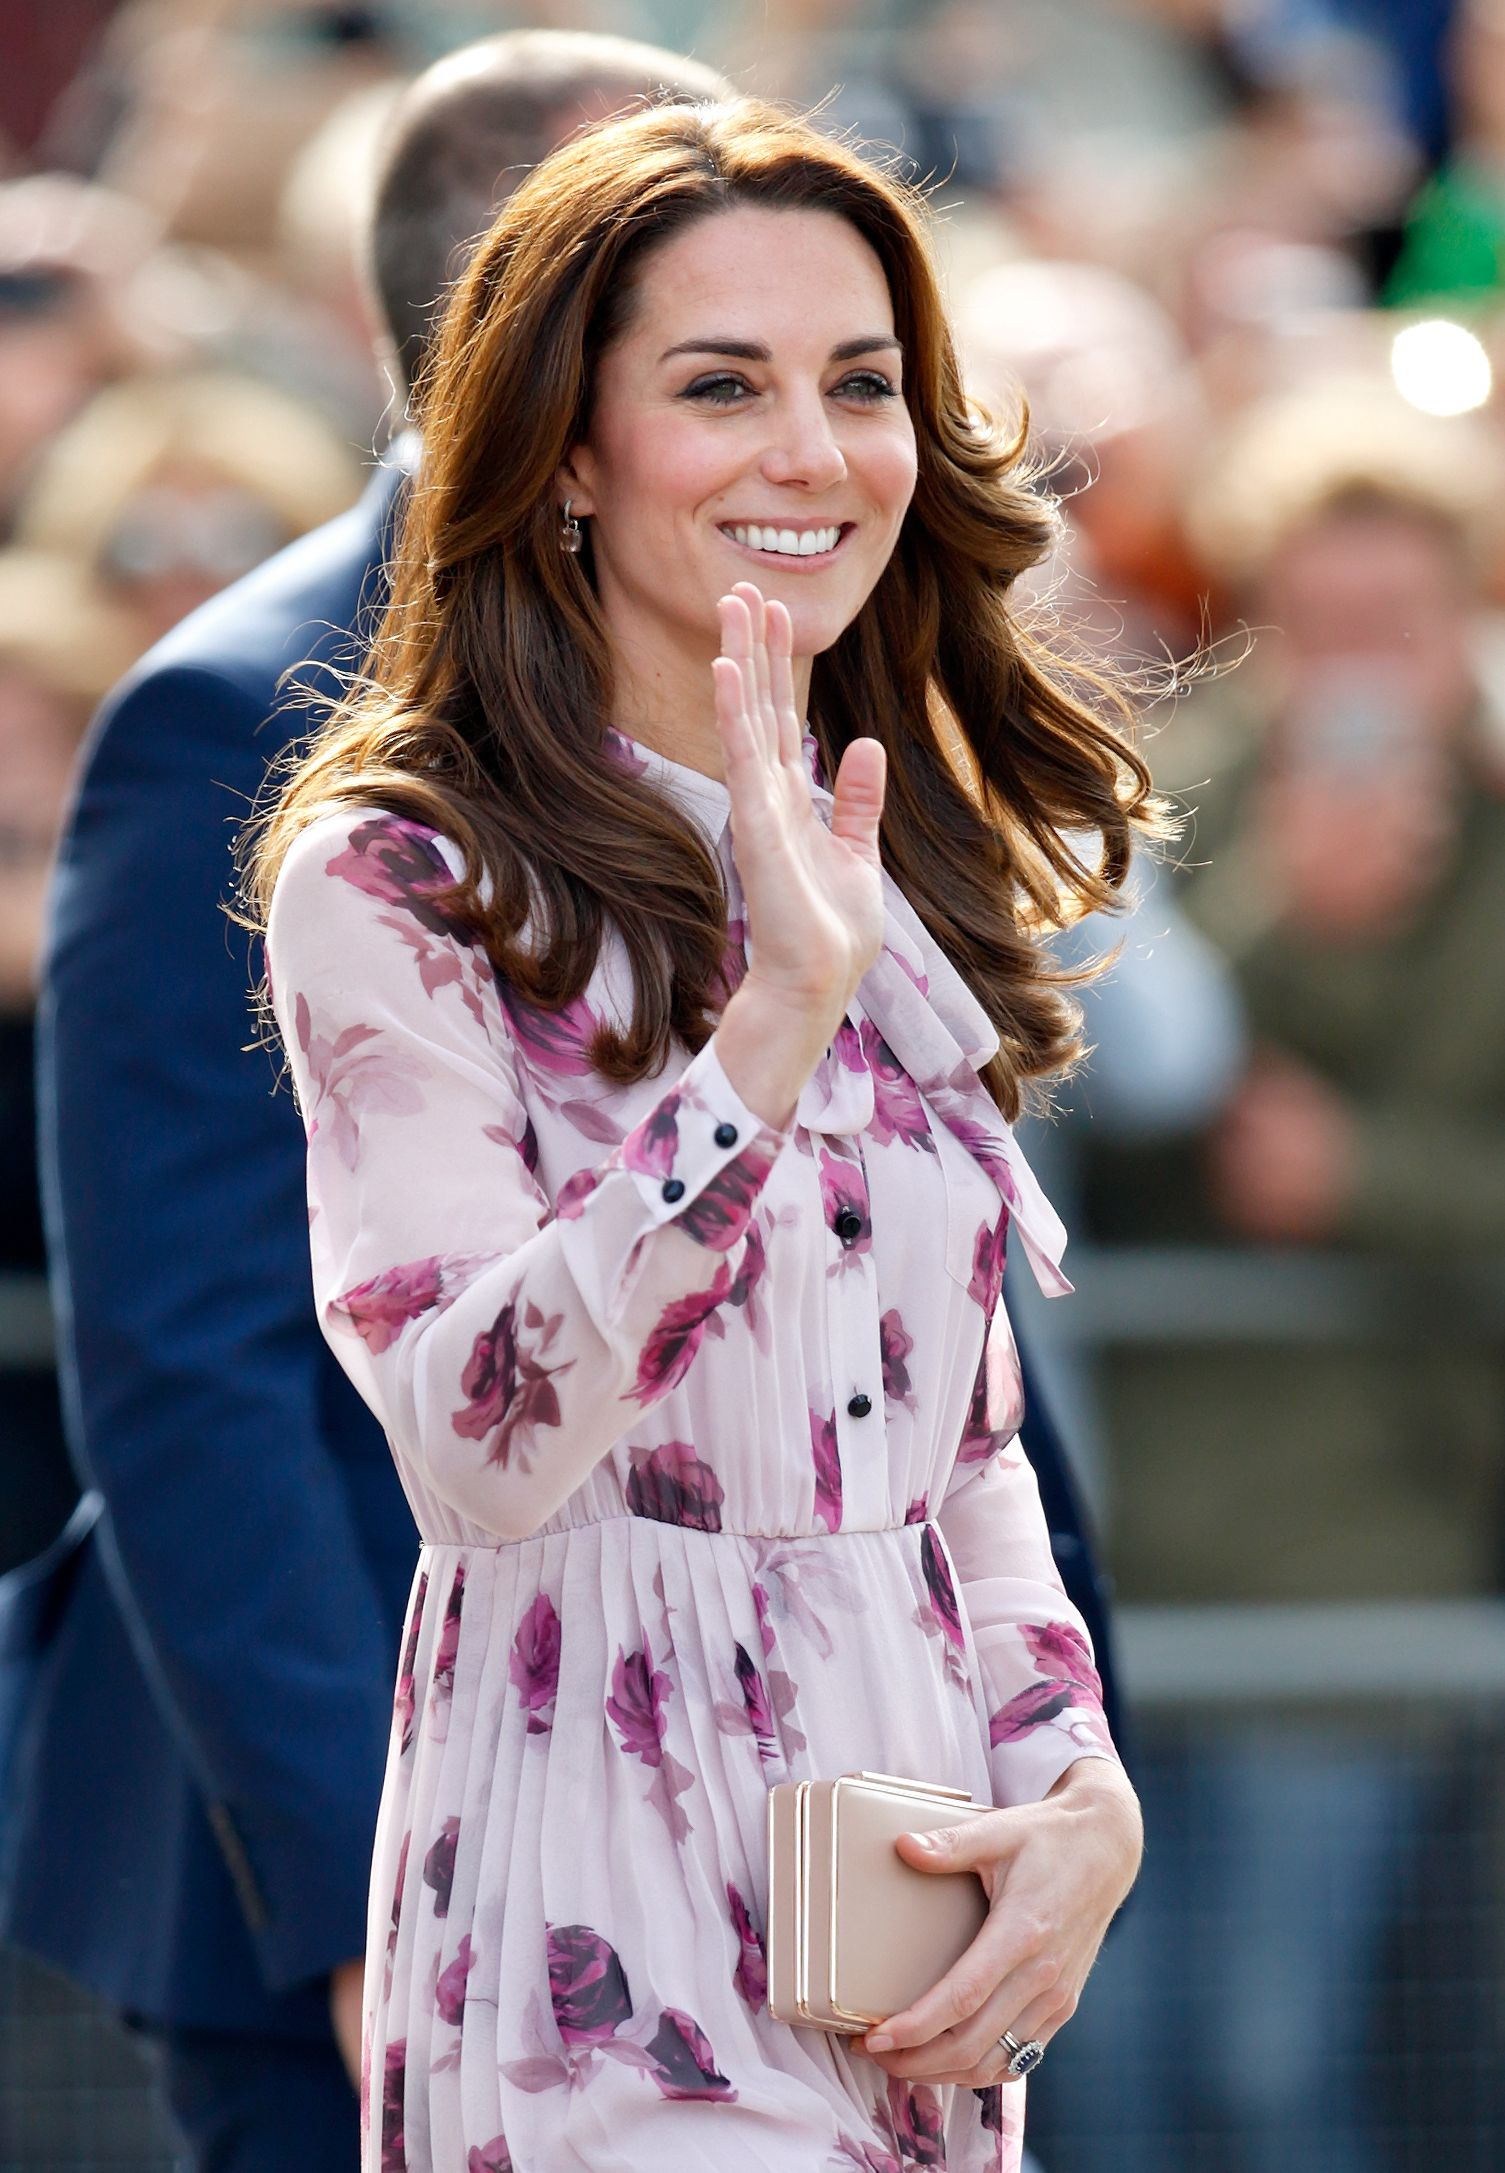 A New Photo of Kate Middleton in a Pink Dress at a Private Engagement Was Just Released by the Palace